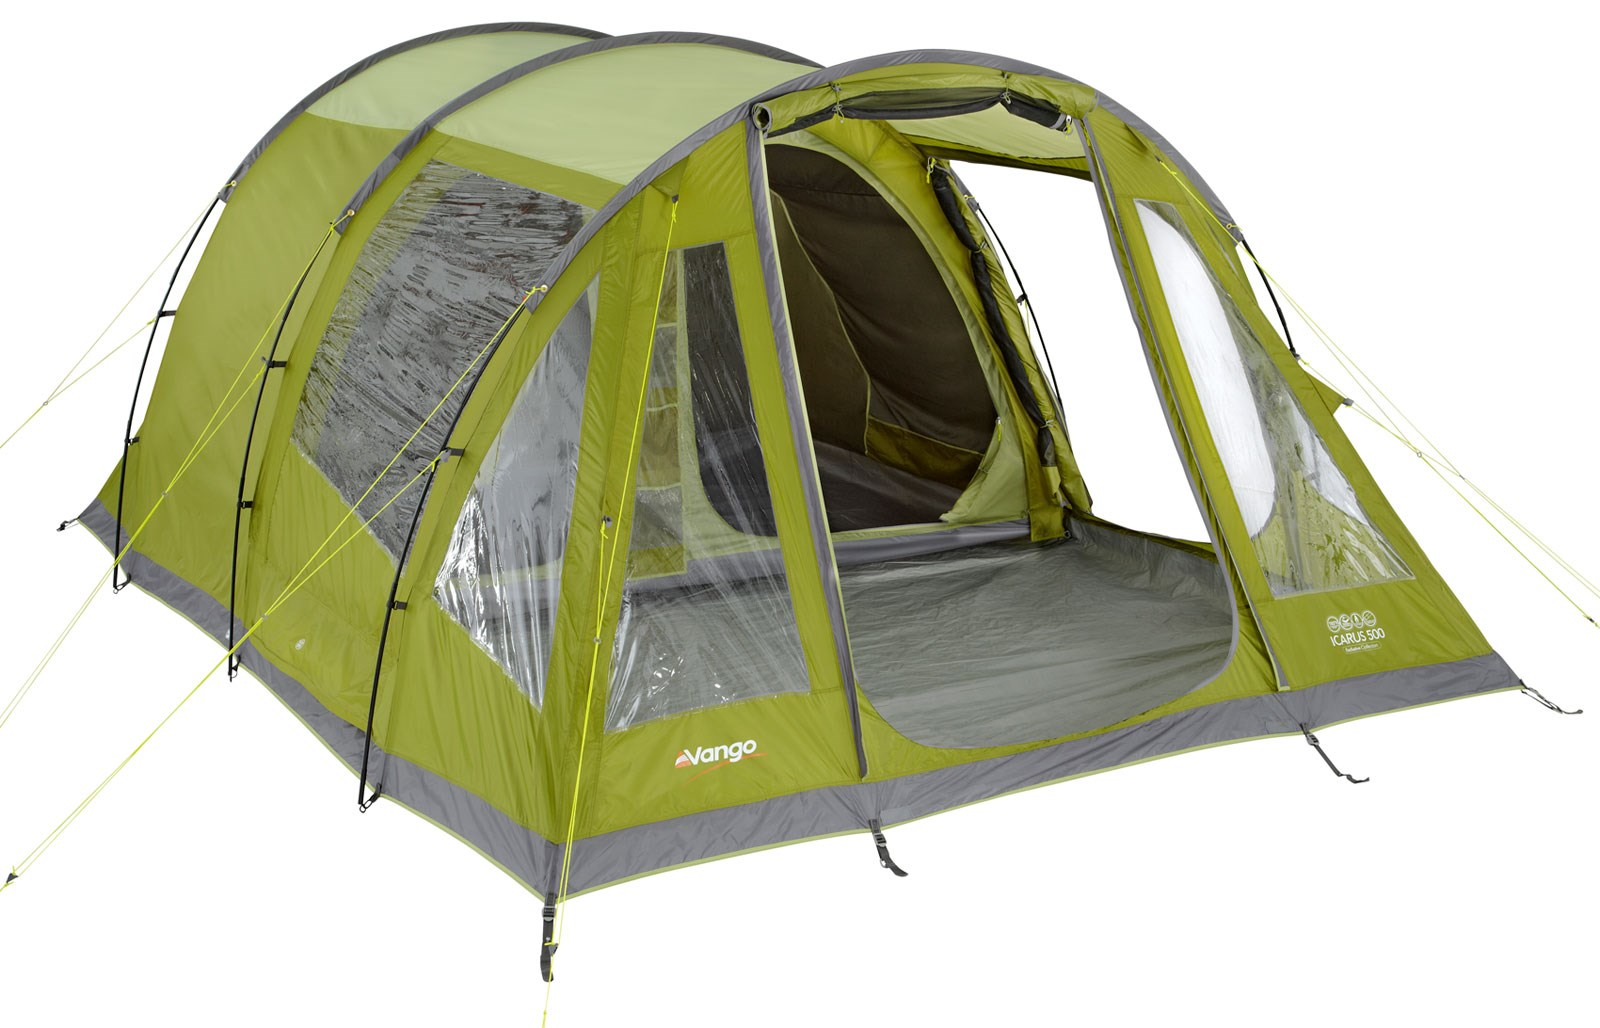 sc 1 st  GO Outdoors & Vango Icarus 500 Deluxe Tent | GO Outdoors